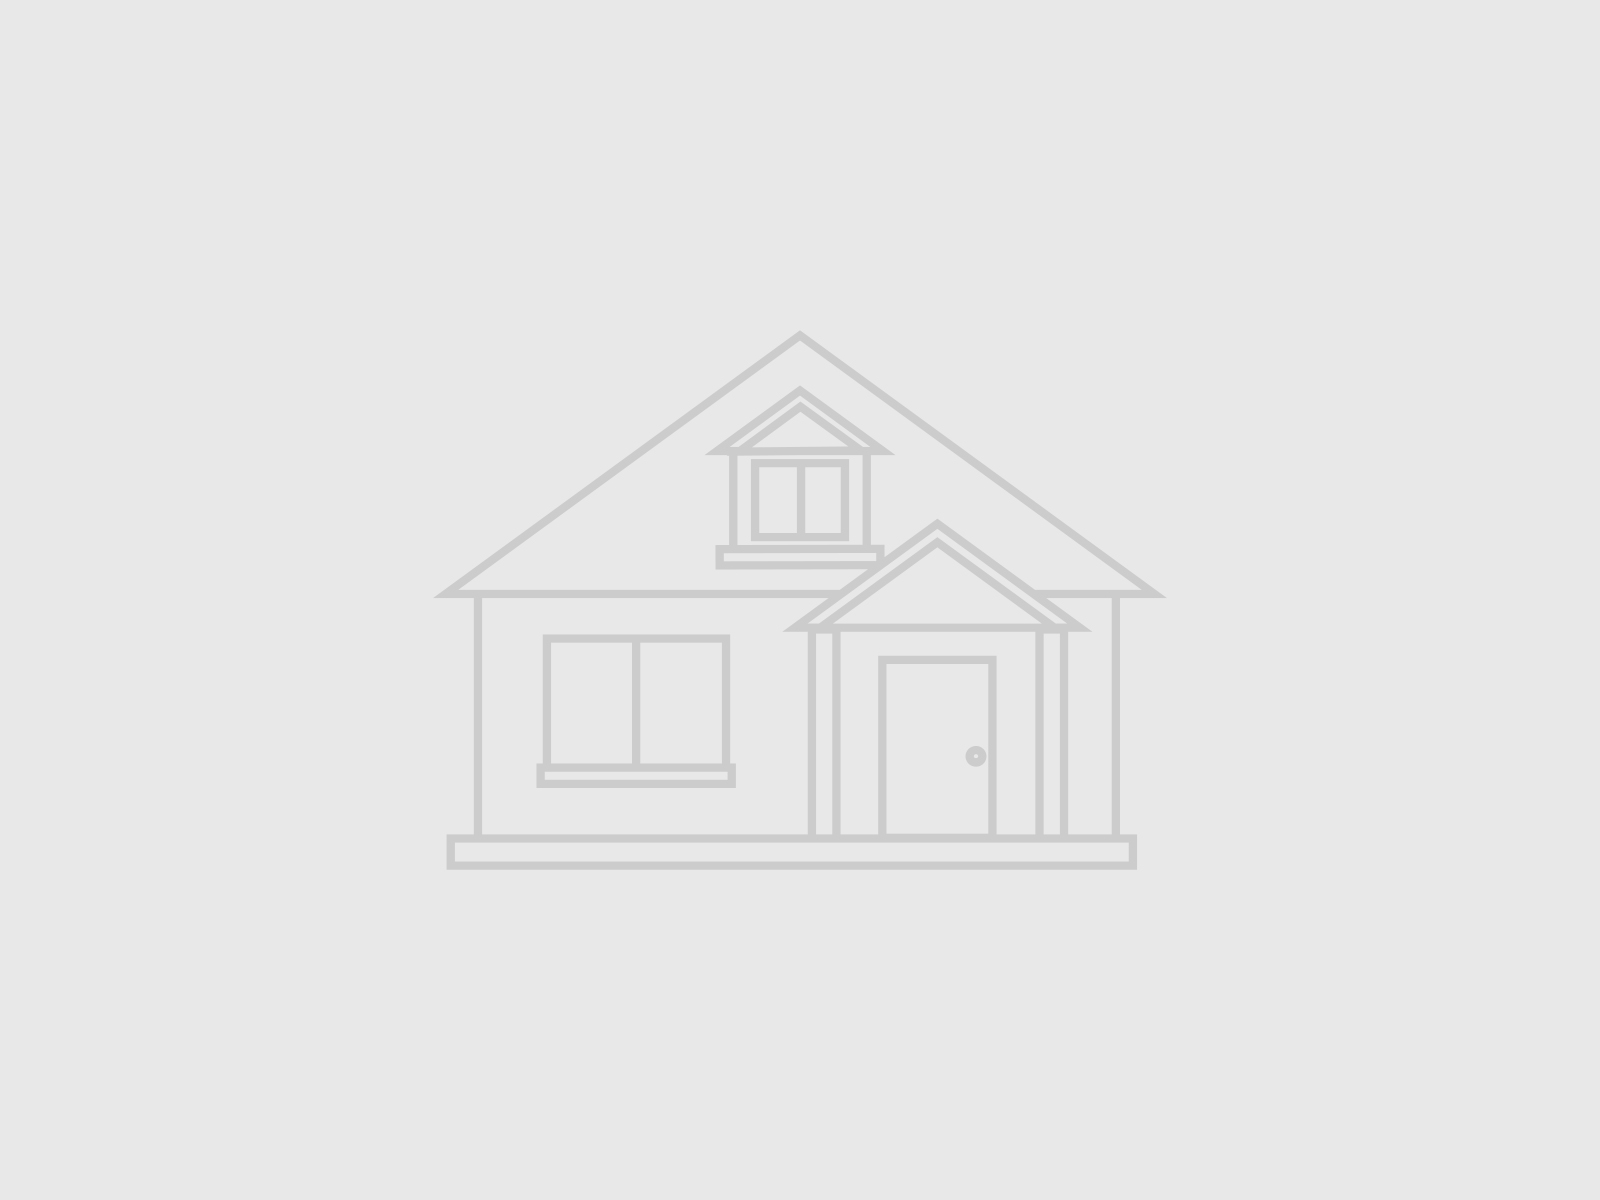 Single Family Homes for Sale at 45 H Haversham Road Westerly, Rhode Island 02891 United States